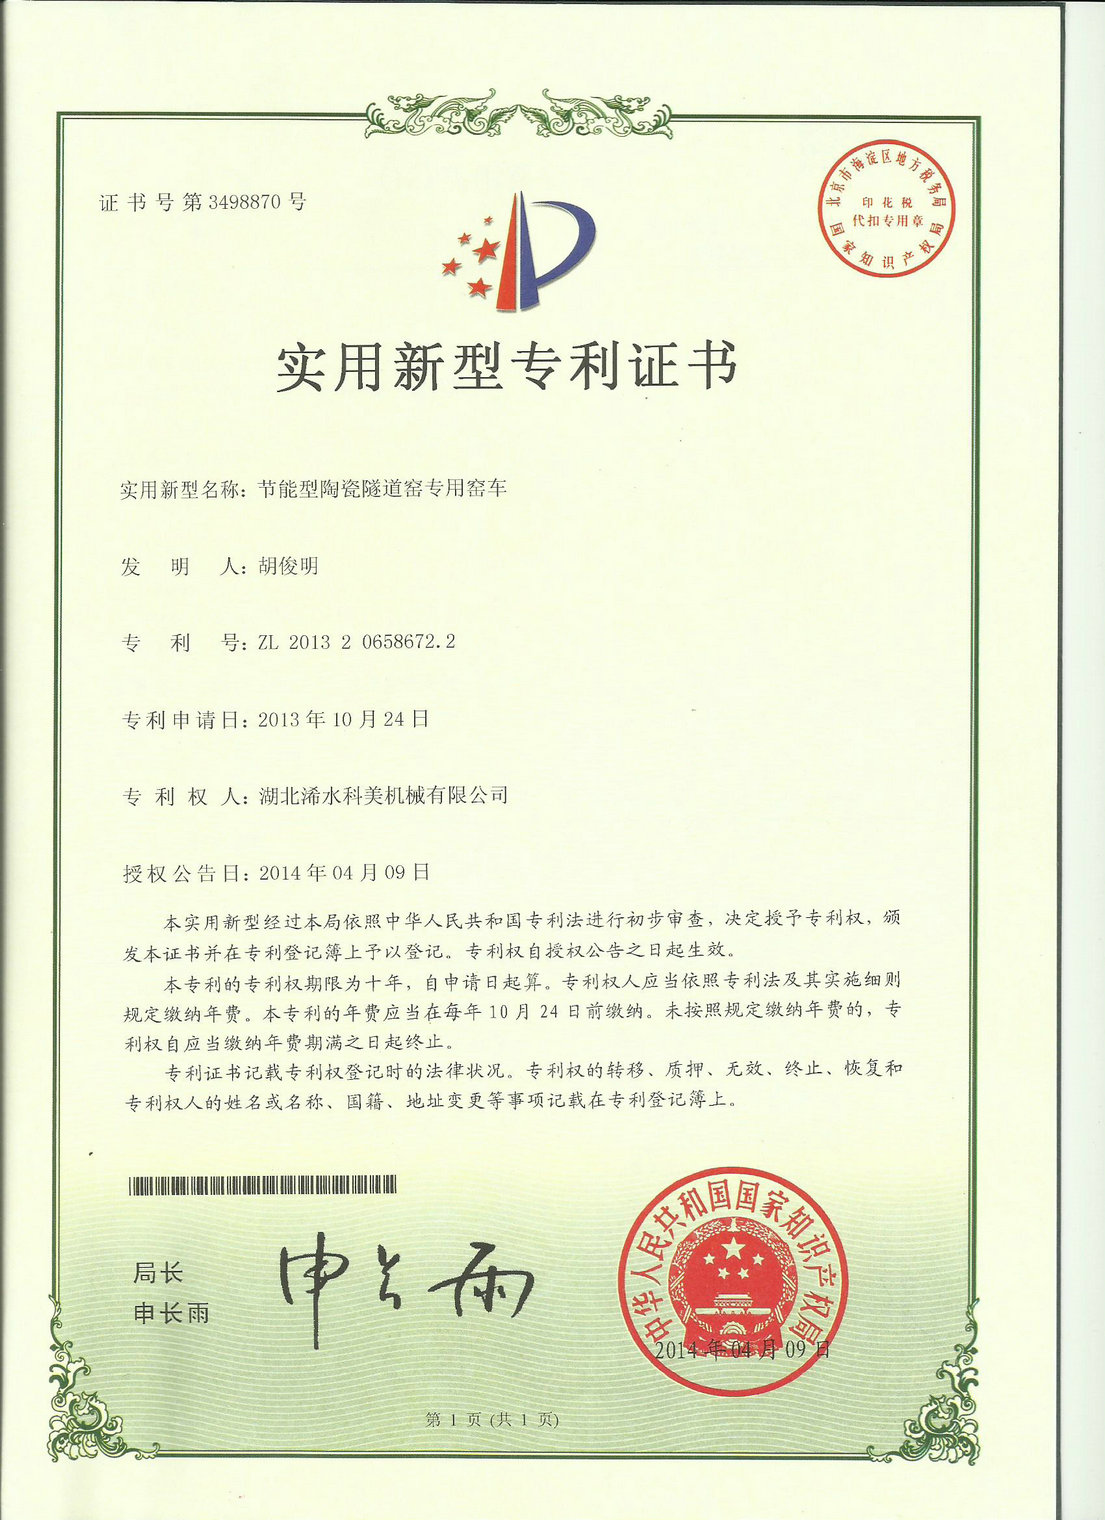 Patented technology certificate